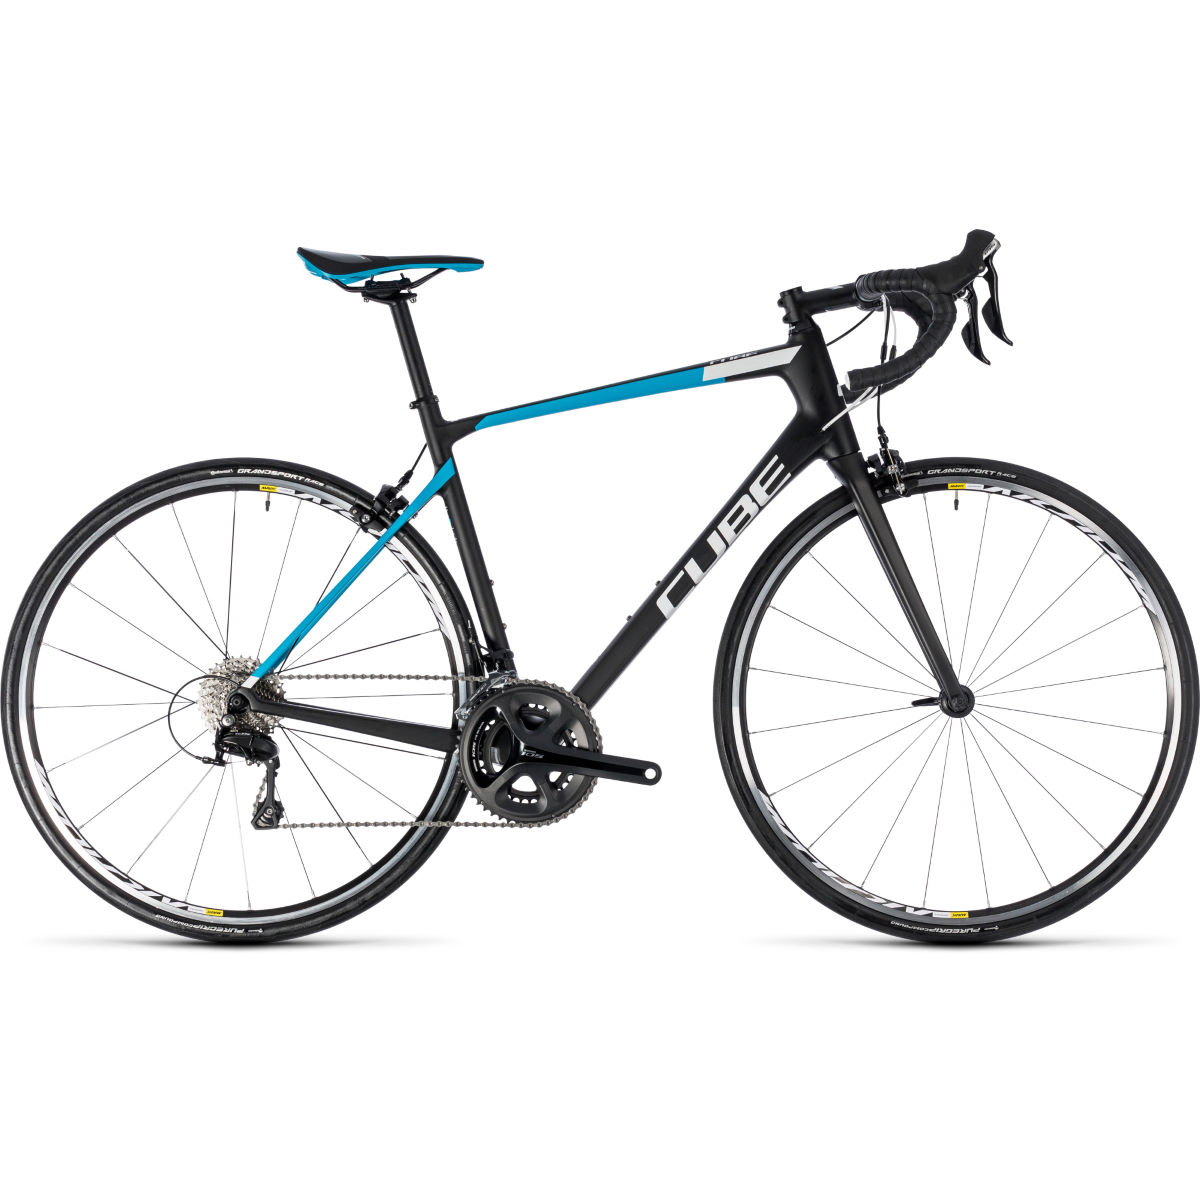 Vélo de route Cube Attain GTC Pro - 58cm Stock Bike Noir/Bleu